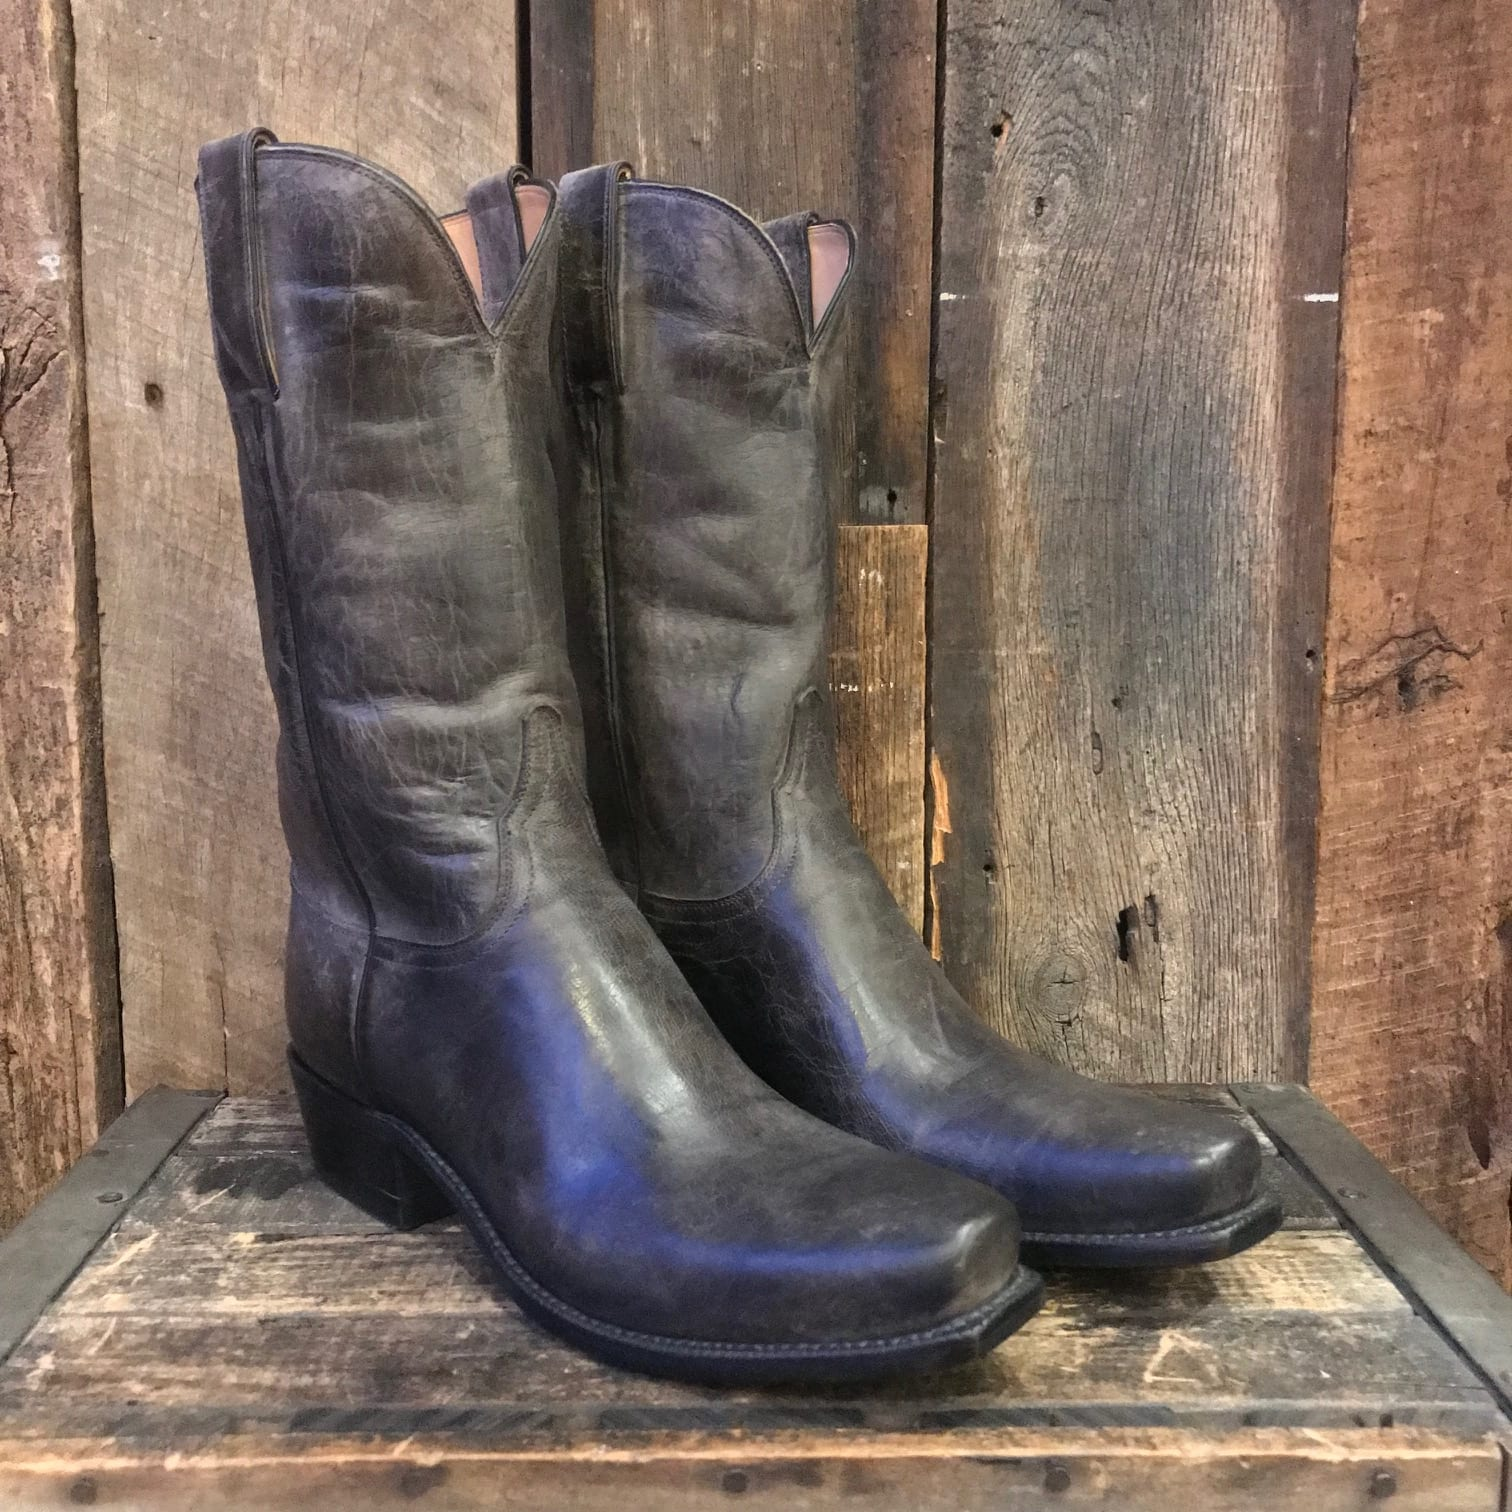 e0614af6f8e Lucchese boots review